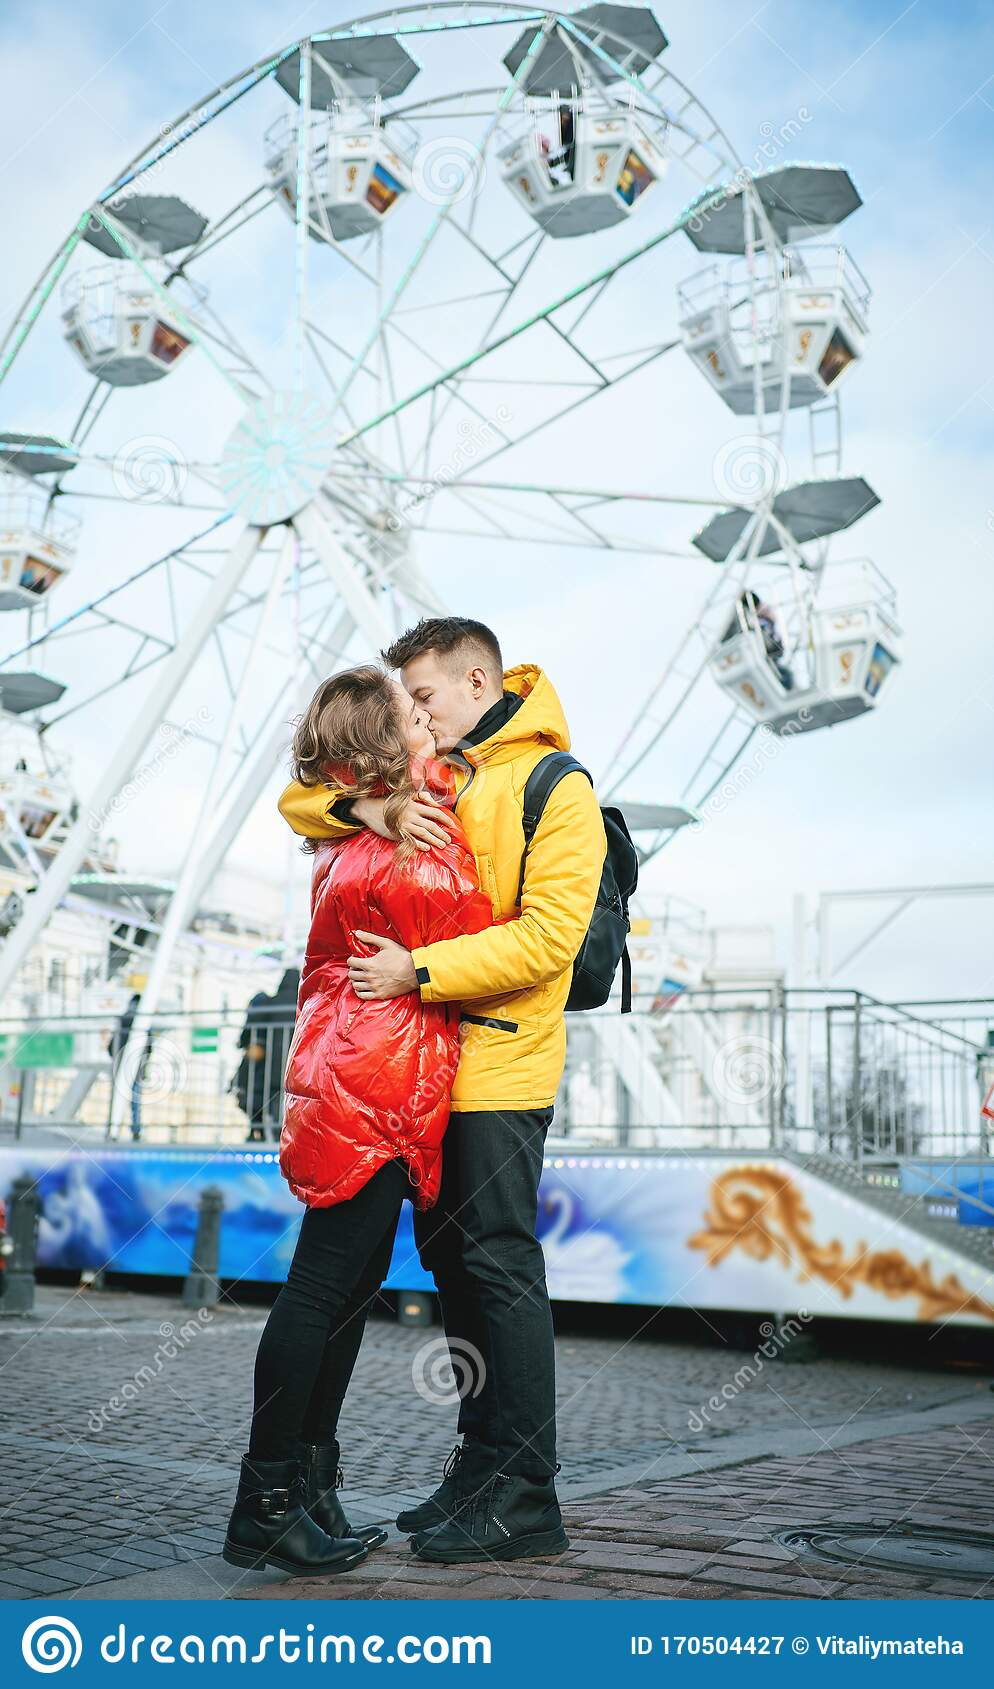 Young Romantic Couple Kissing Hugging Walking On The Street Wearning In Bright Down Jackets Ferris Wheel On Stock Image Image Of Embracing City 170504427